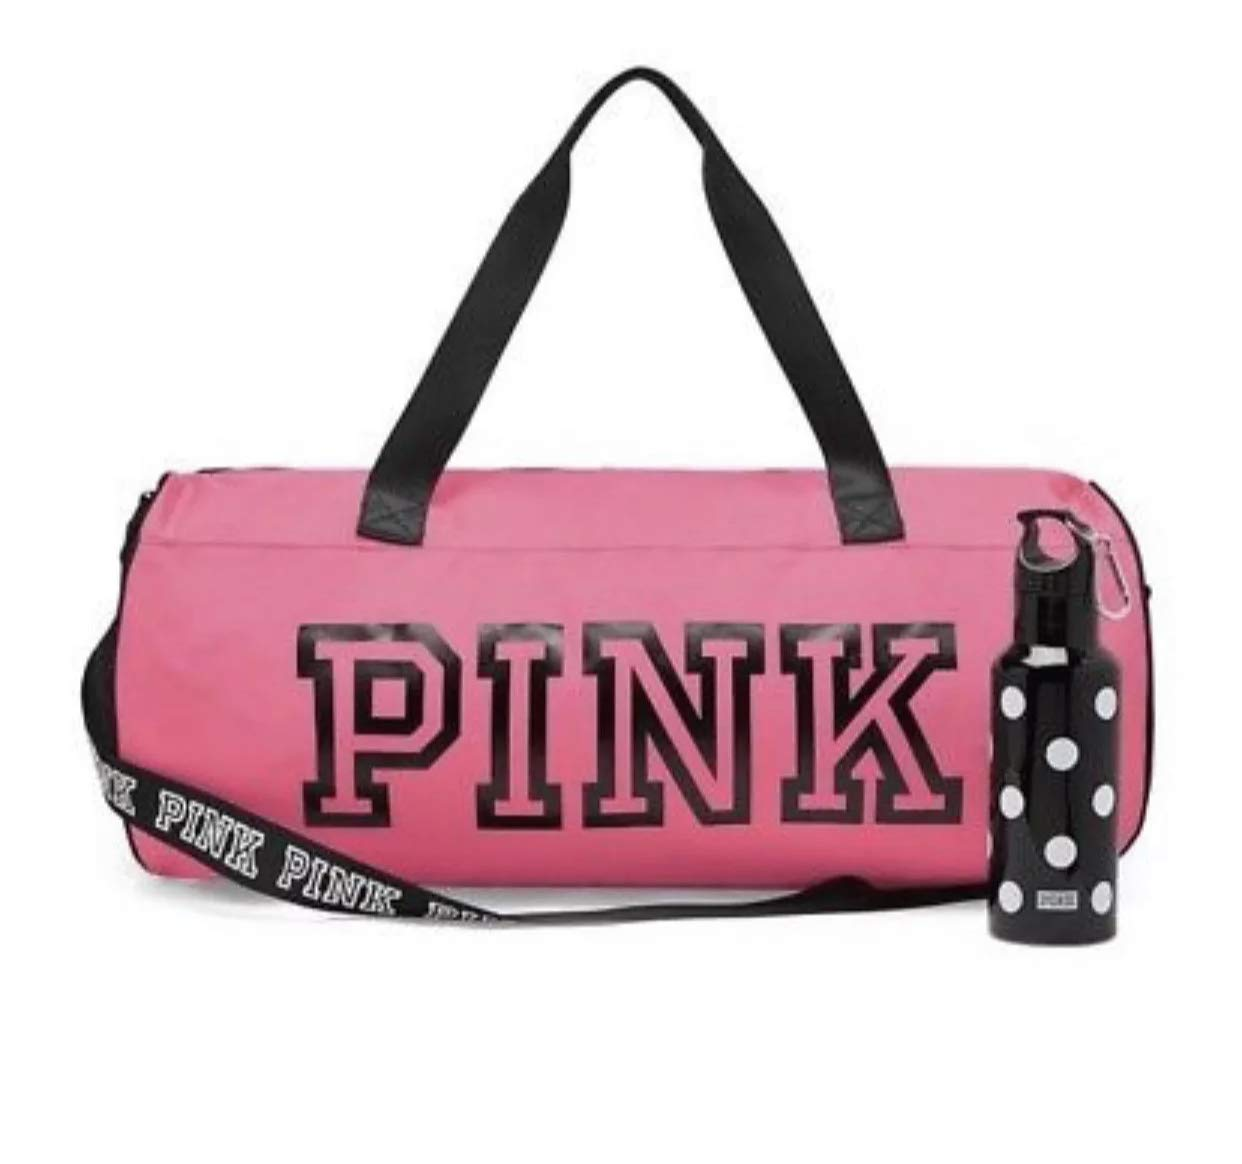 e0a57881b0de Amazon.com  Victoria s Secret PINK Friday Duffle   Campus Water Bottle Duo Neon  Hot Pink  Sports   Outdoors